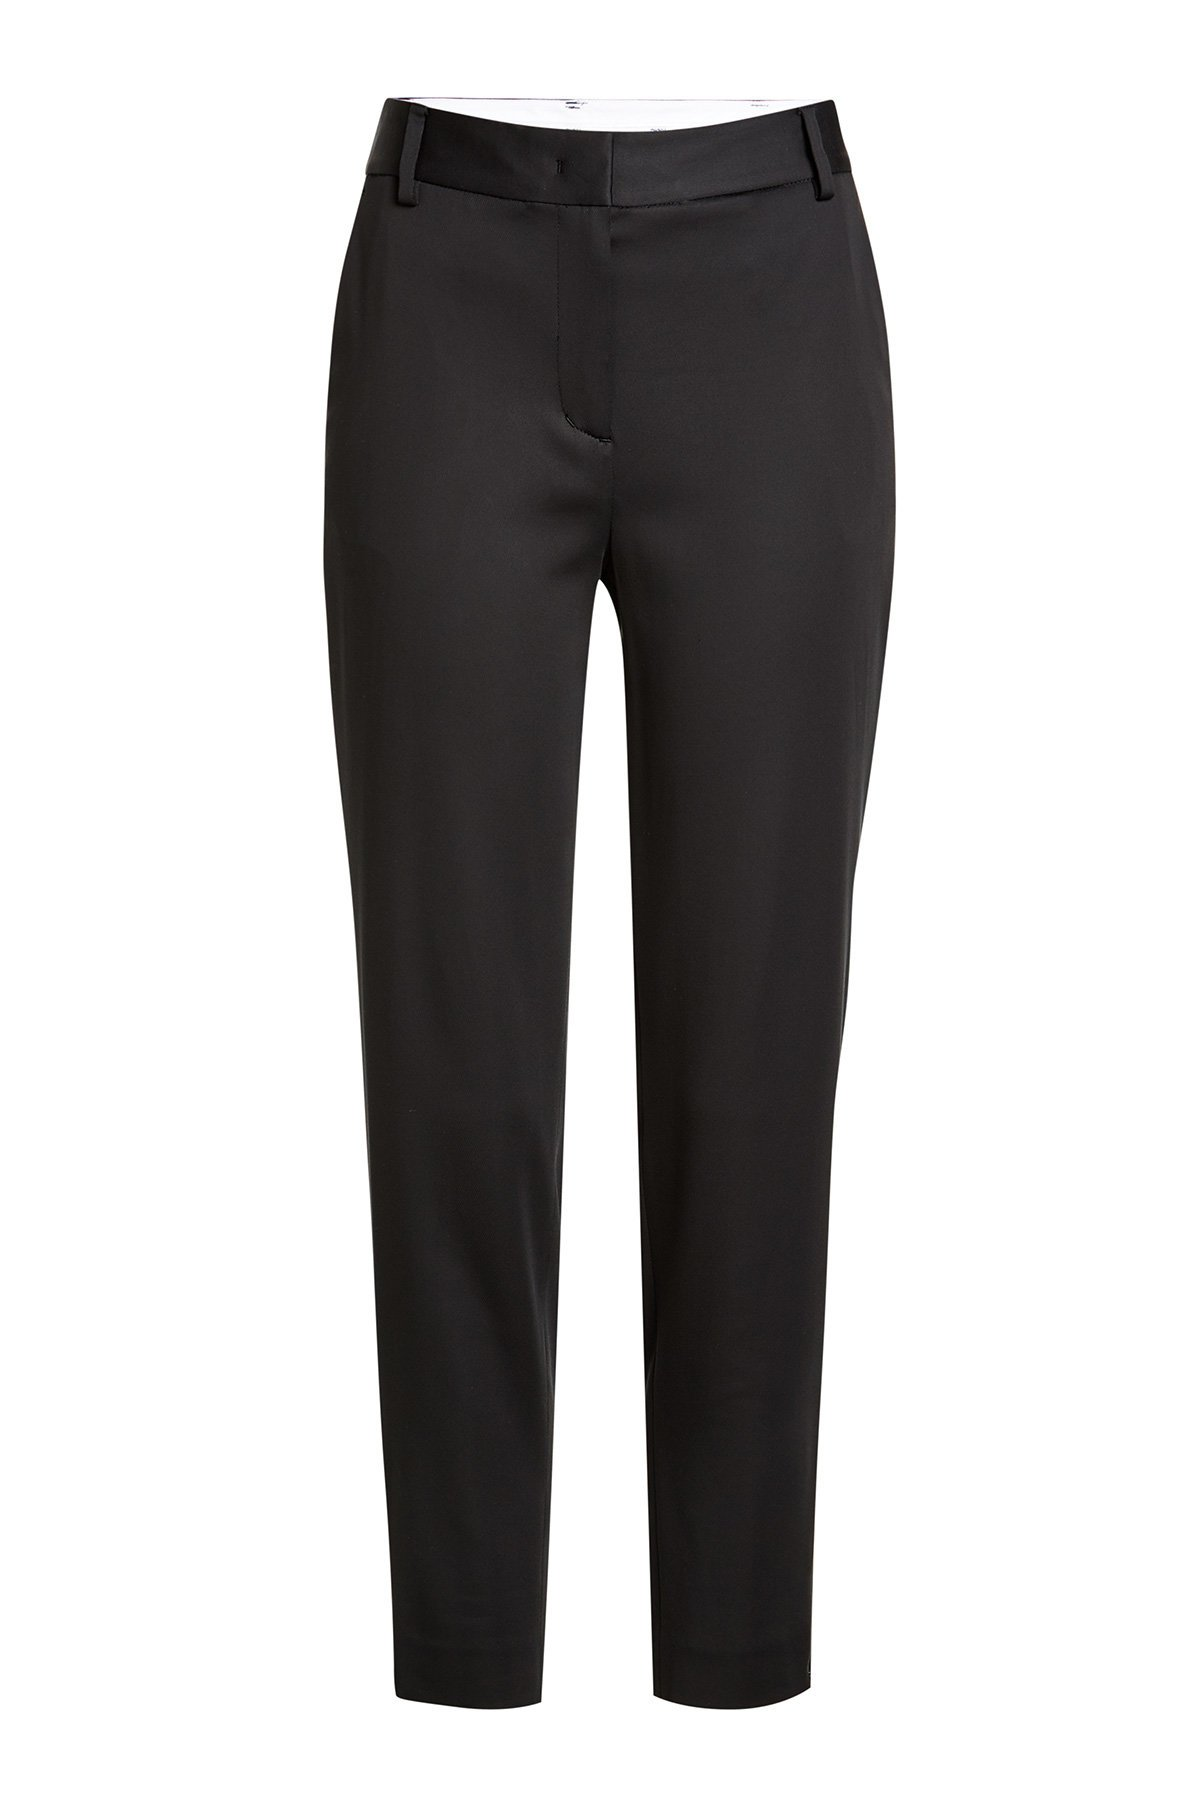 DKNY Women's Tailored Relaxed Crop Pants (10, Black) by DKNY